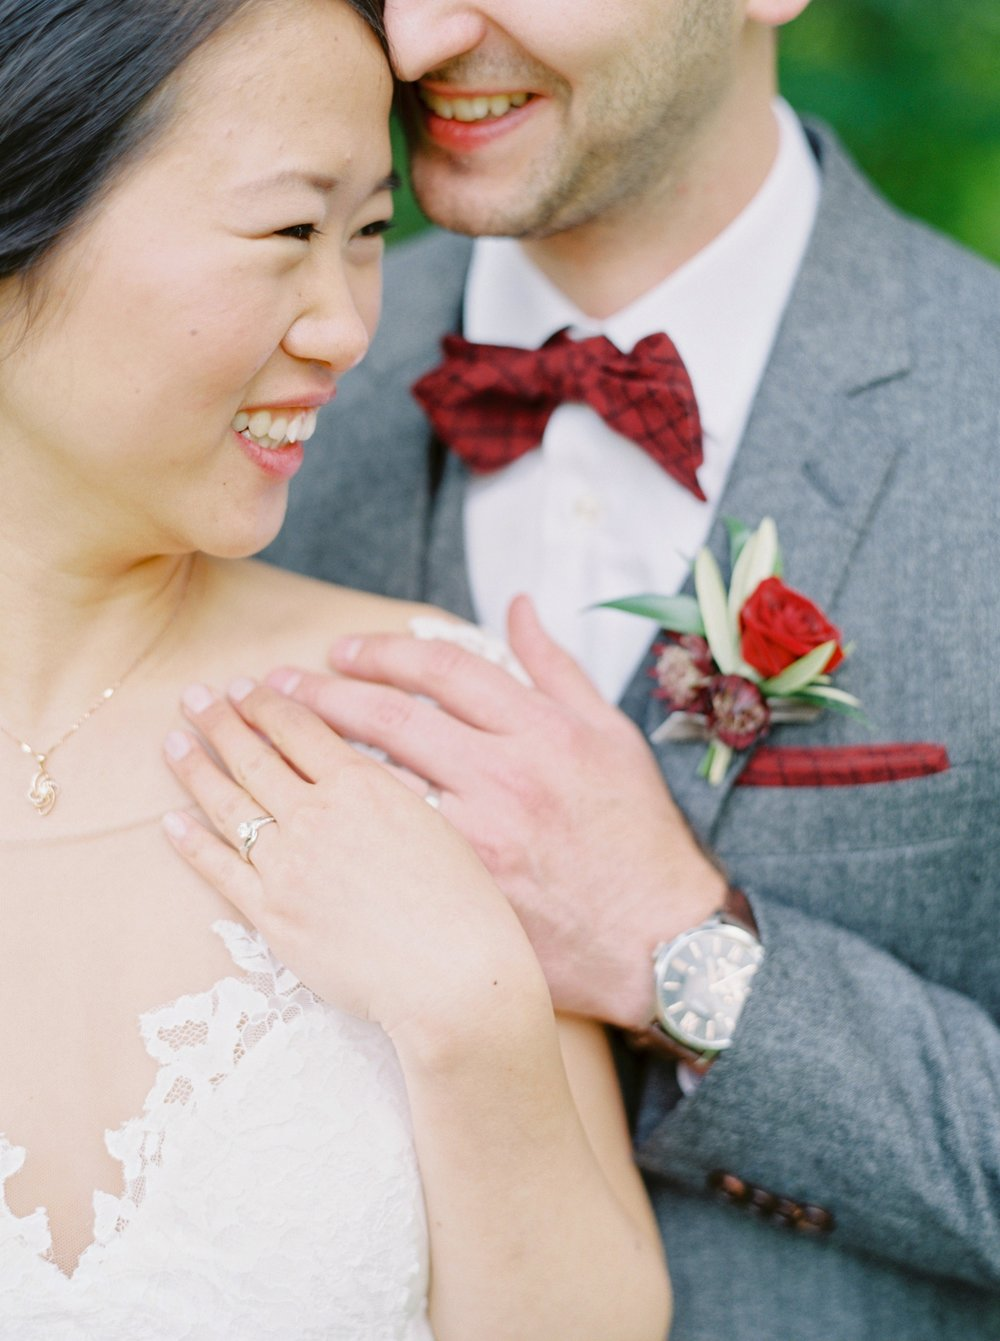 Calgary wedding photographer | fine art film photography | Calgary Wedding Photographers | Calgary couples photographer | Justine Milton Photography | bowtie | couples portrait